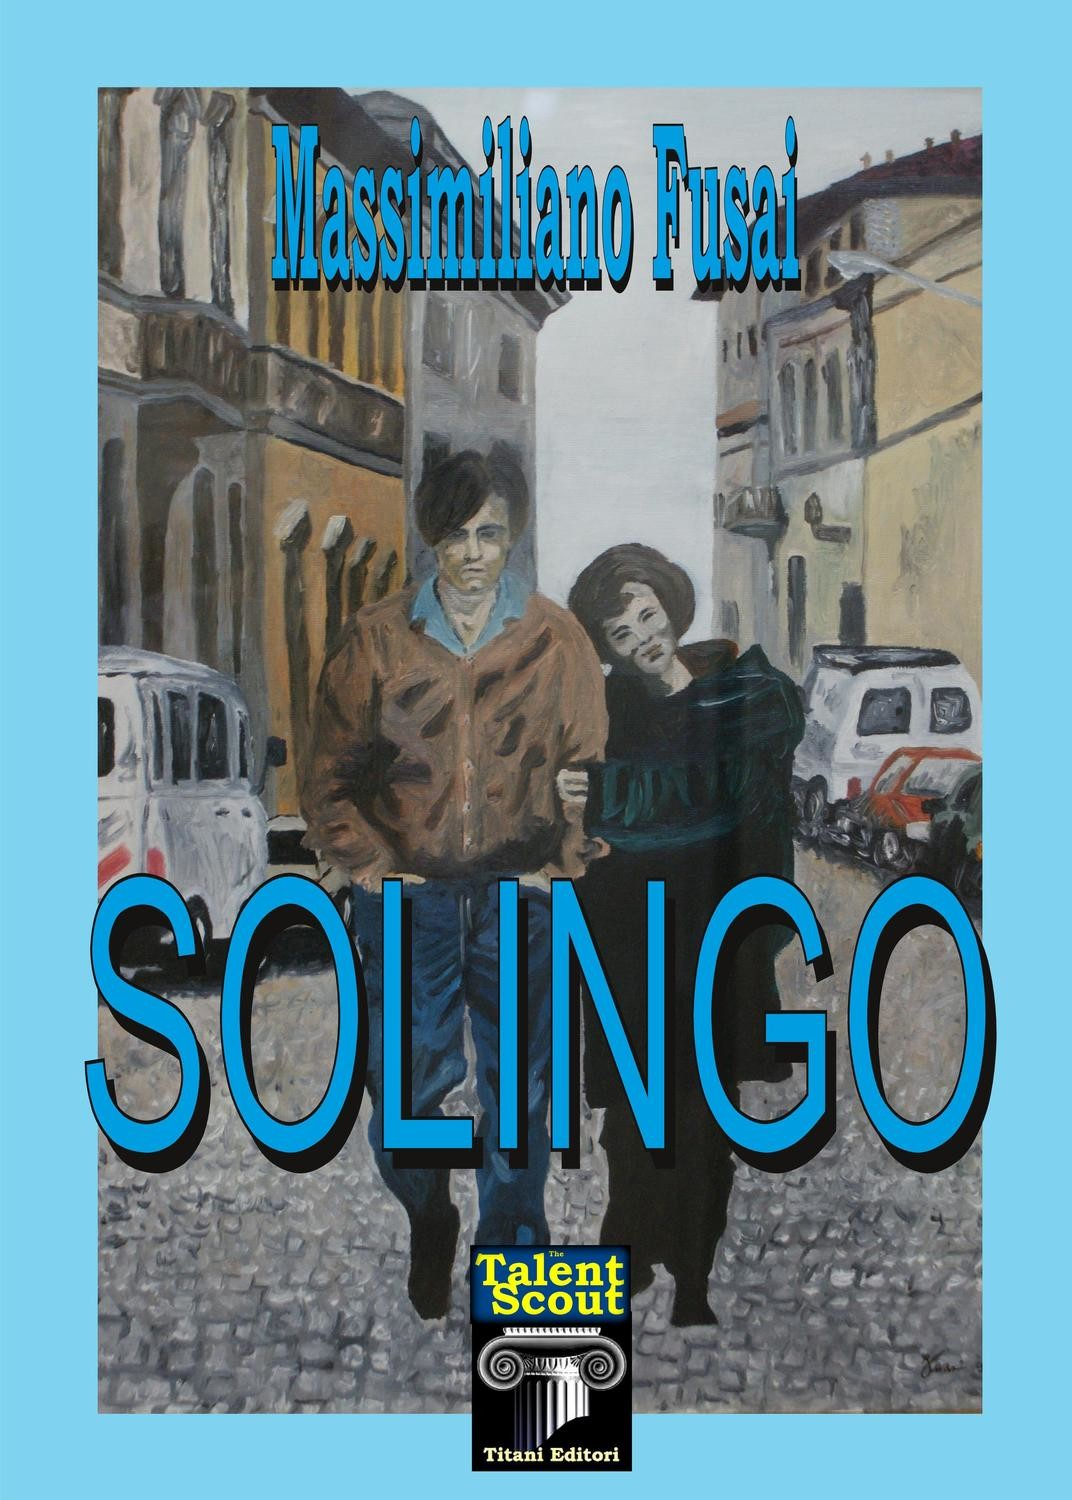 SOLINGO - Massimiliano Fusai